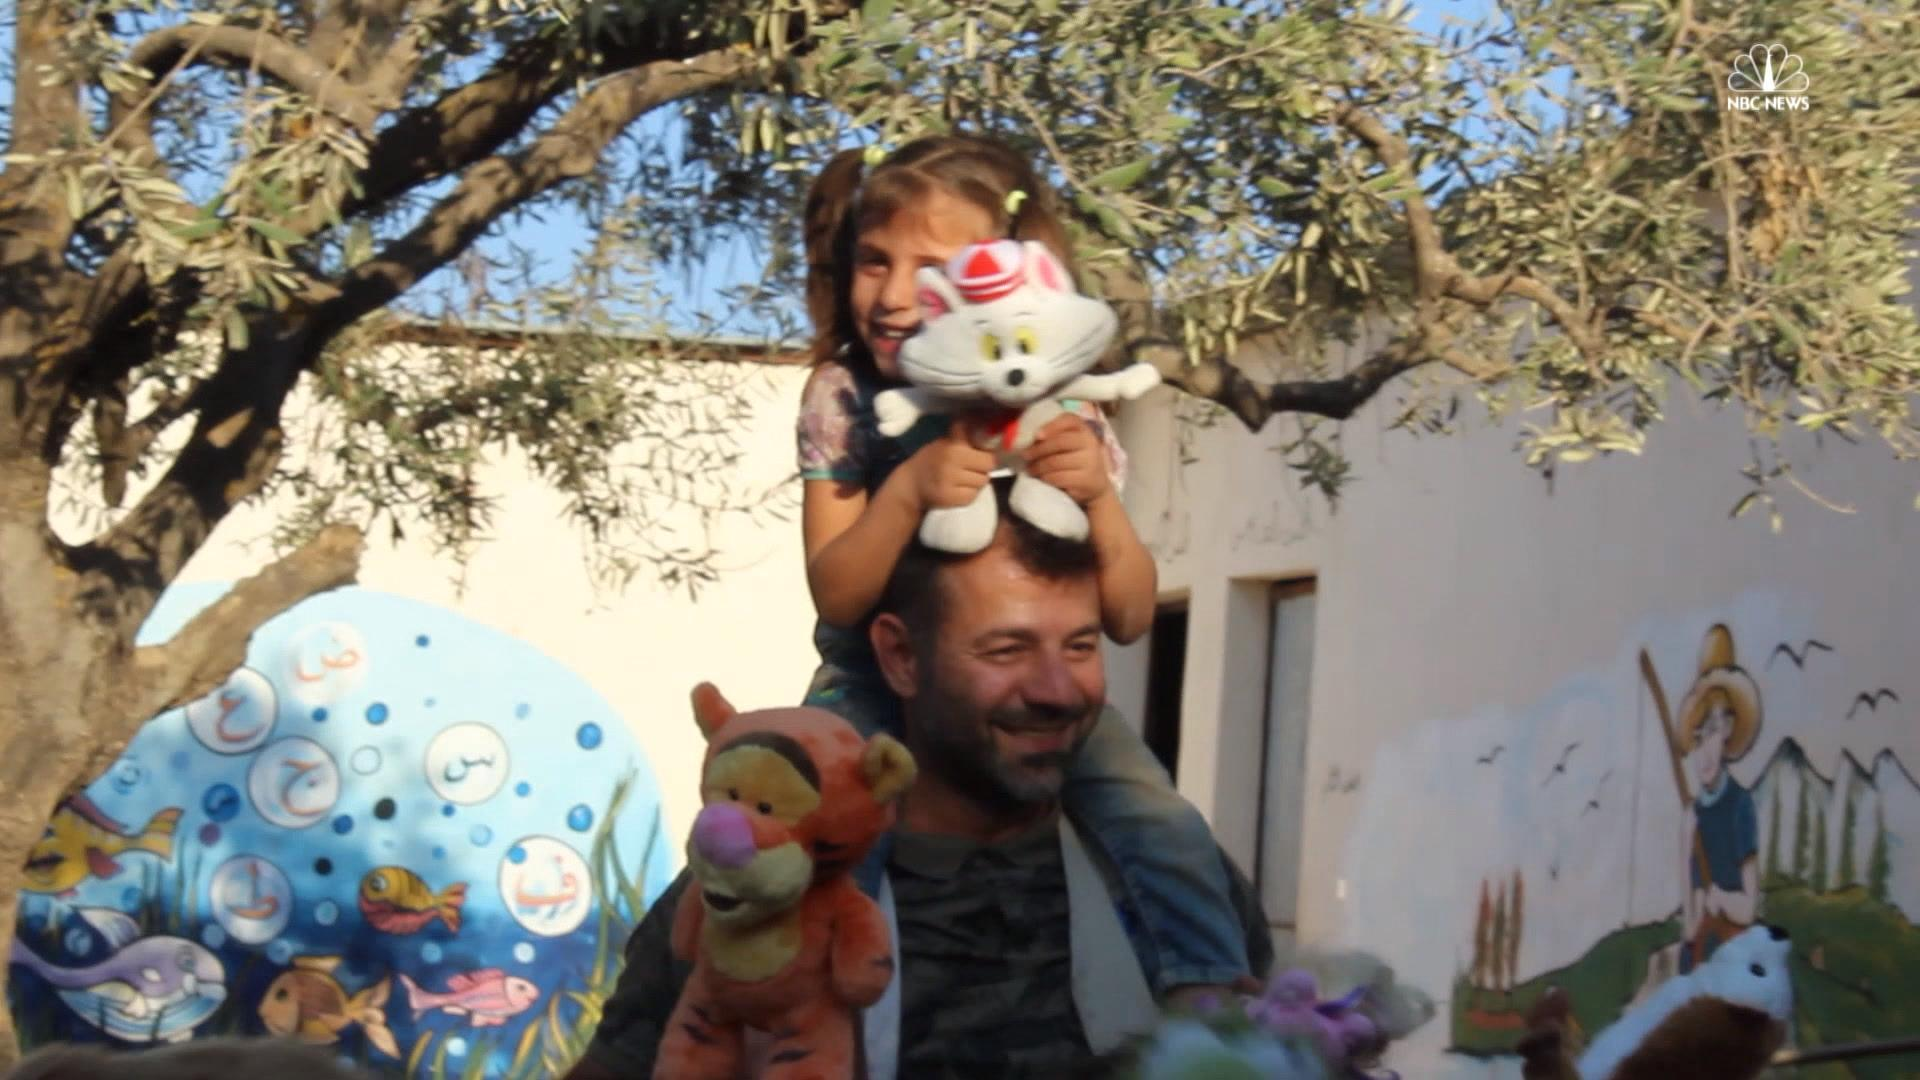 'Toy Smuggler' Brings Joy to Children in War-Torn Syria - NBC News